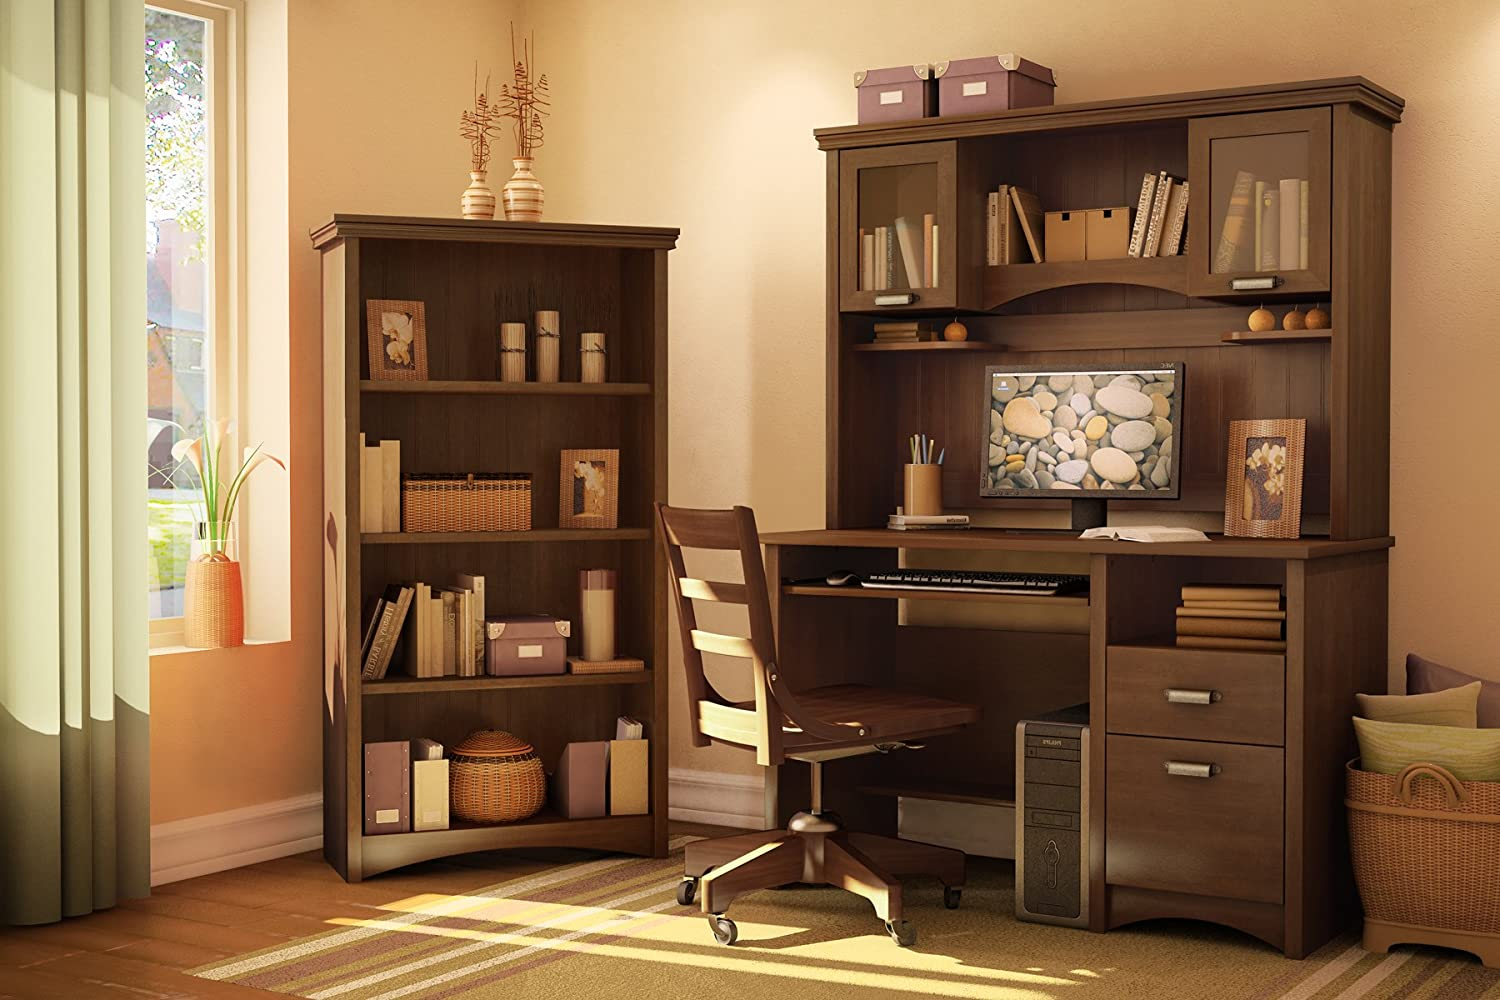 Amazon.com: South Shore Furniture Gascony Collection Small Desk, Sumptuous  Cherry: Kitchen U0026 Dining